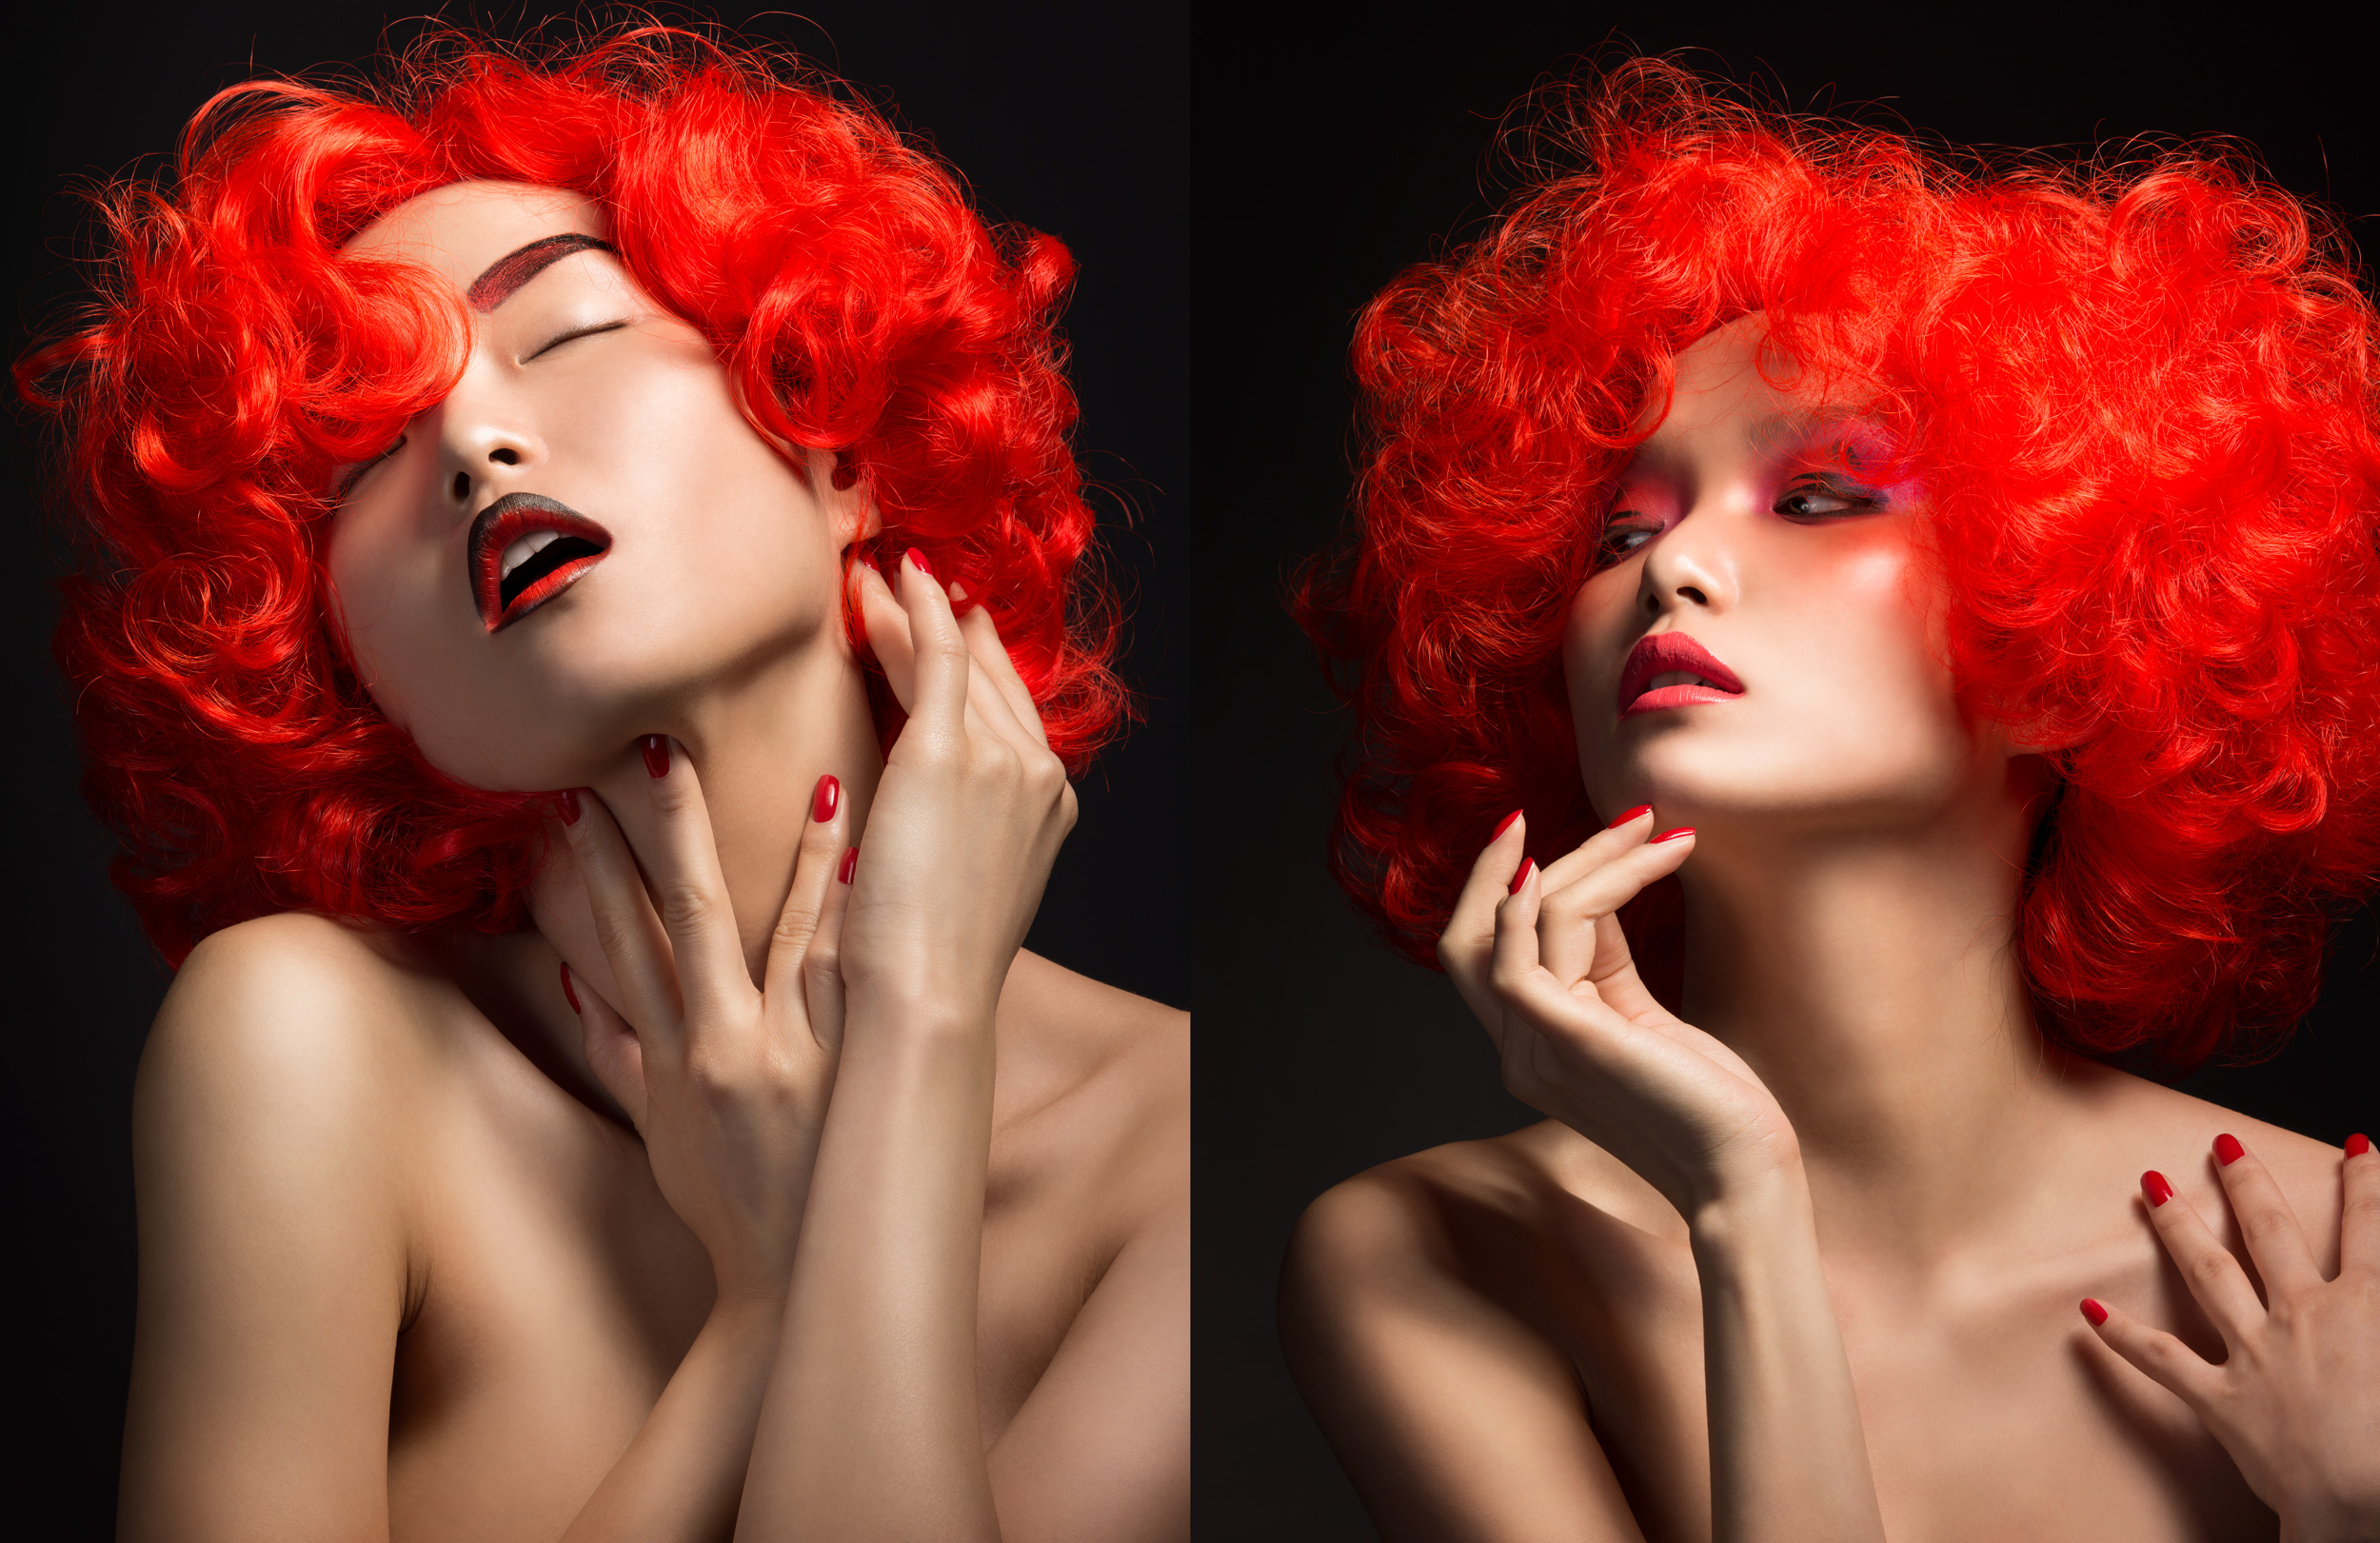 Musilek-Stan-Dior-Red-Hair-Lips-Asian-Model-Fashion-Photographer-Advertising